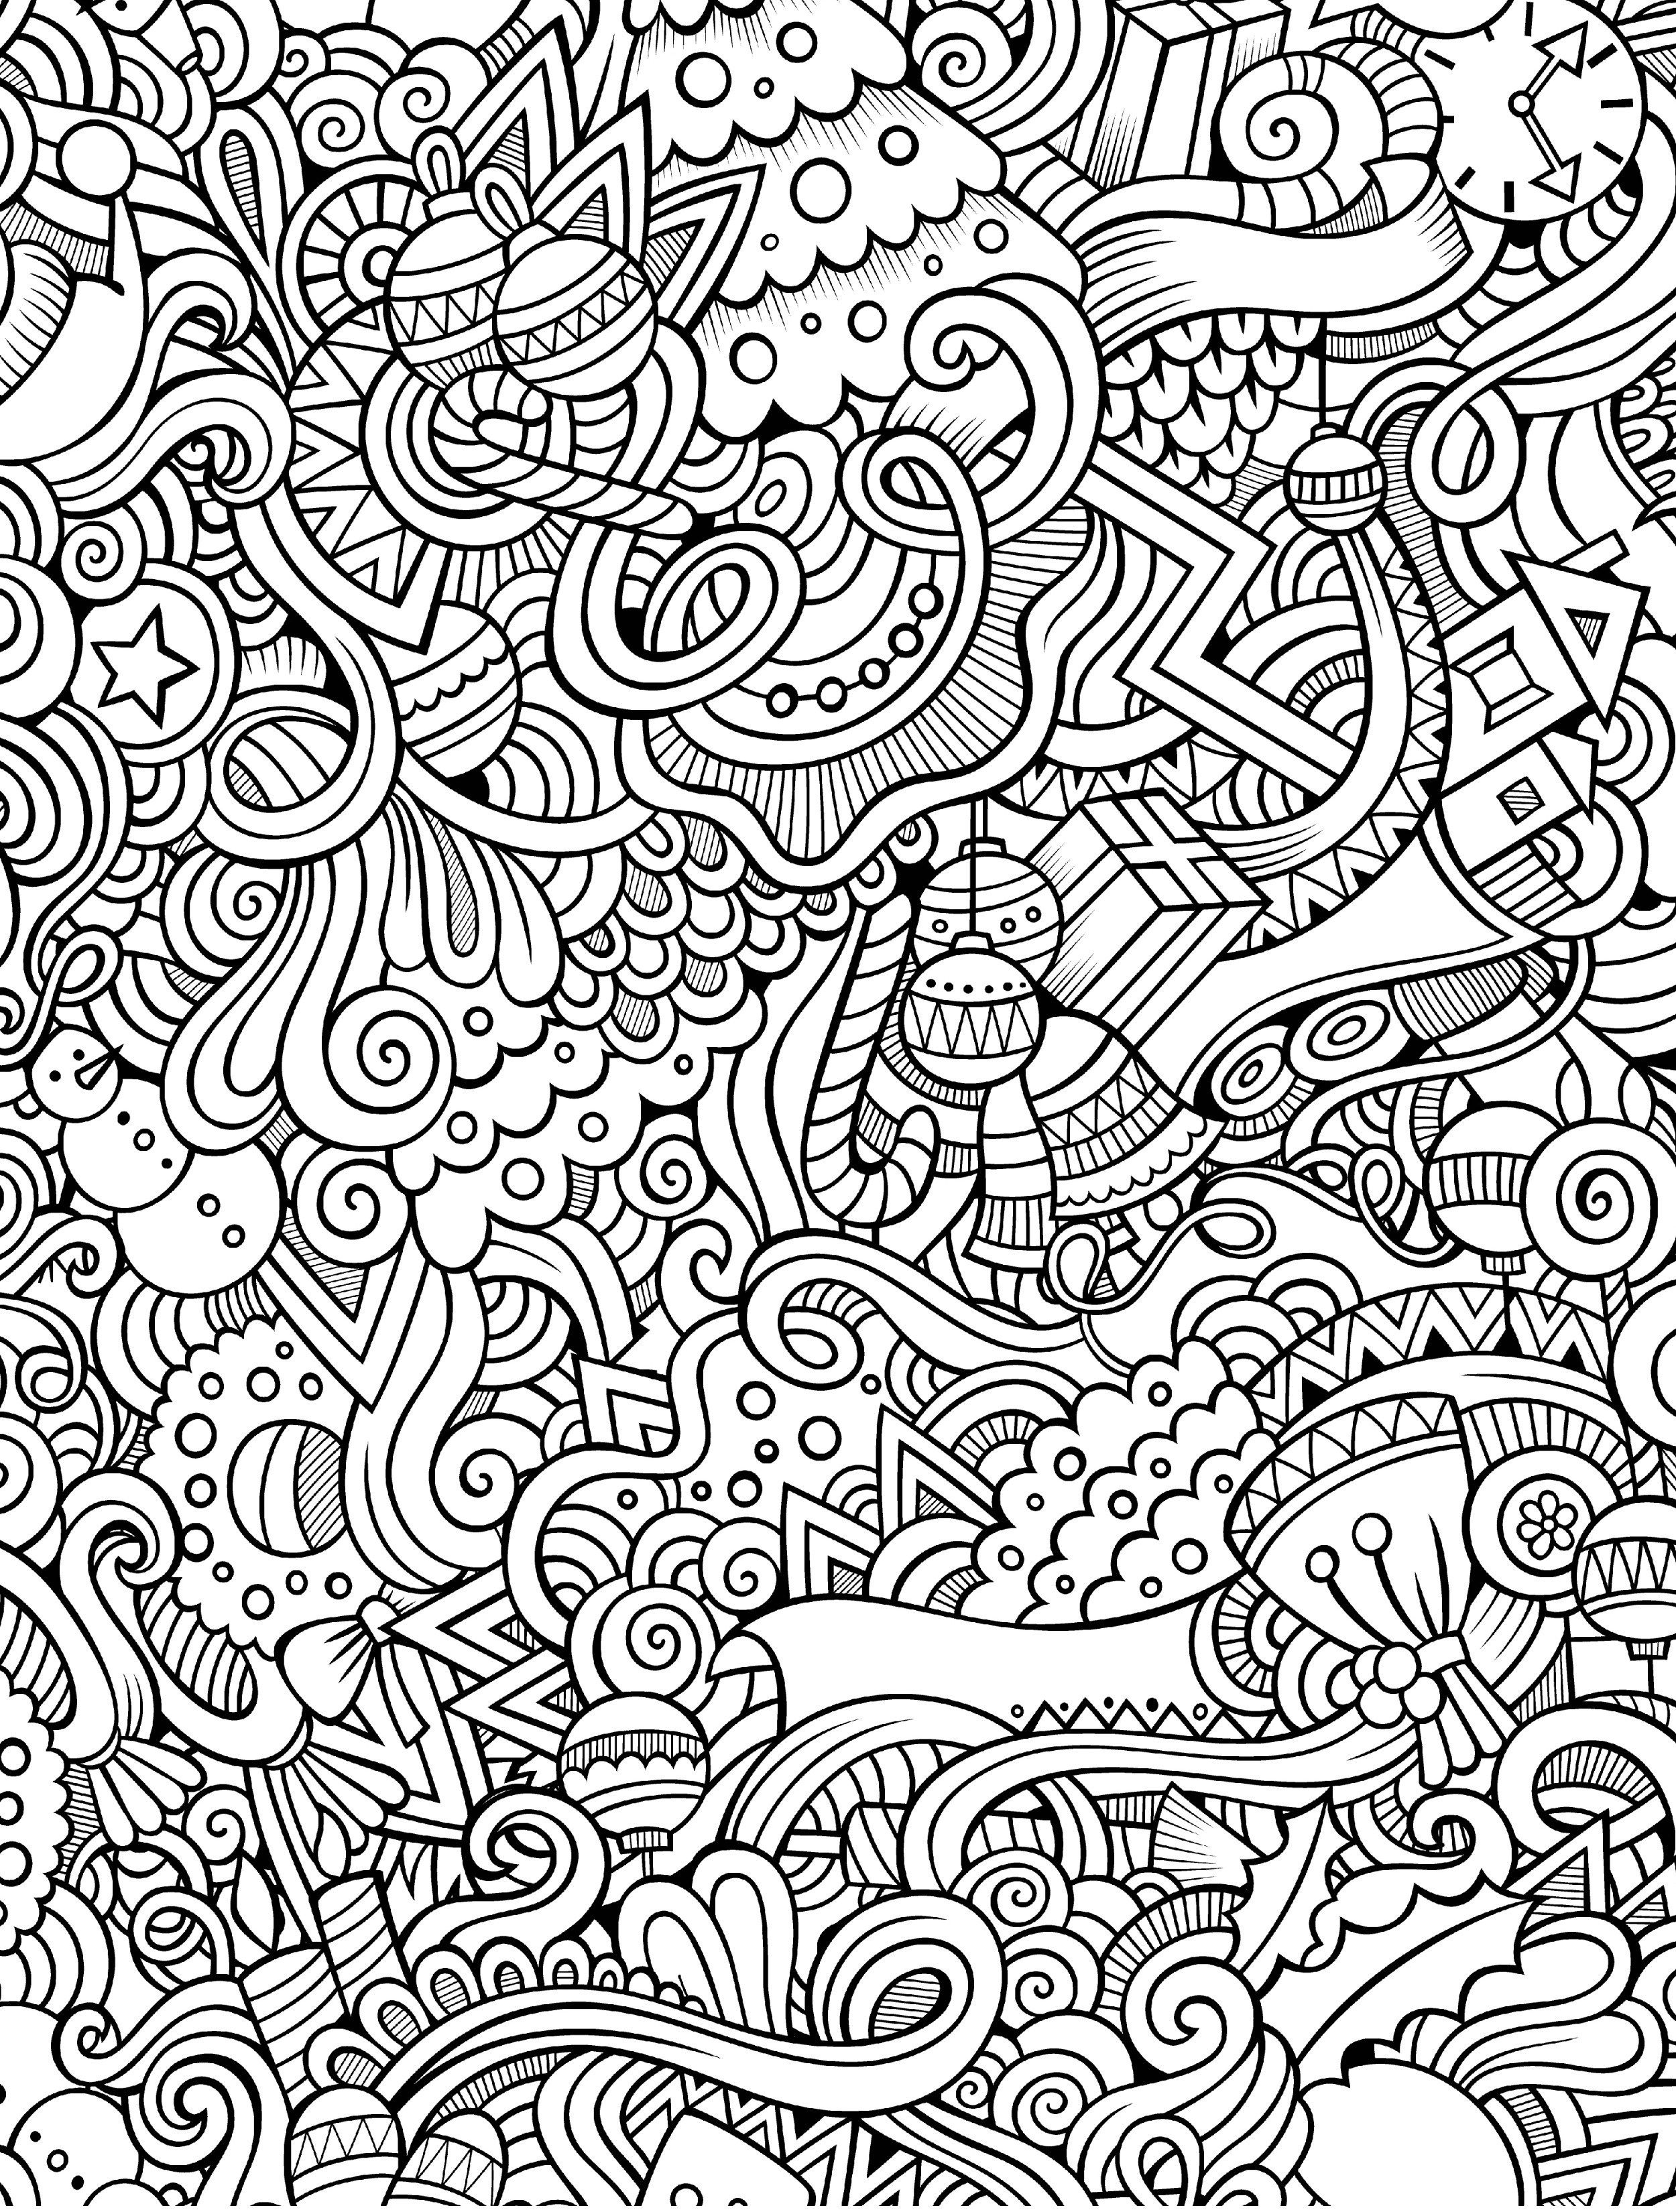 10 Free Printable Holiday Adult Coloring Pages | Coloring Pages - Free Printable Coloring Book Pages For Adults